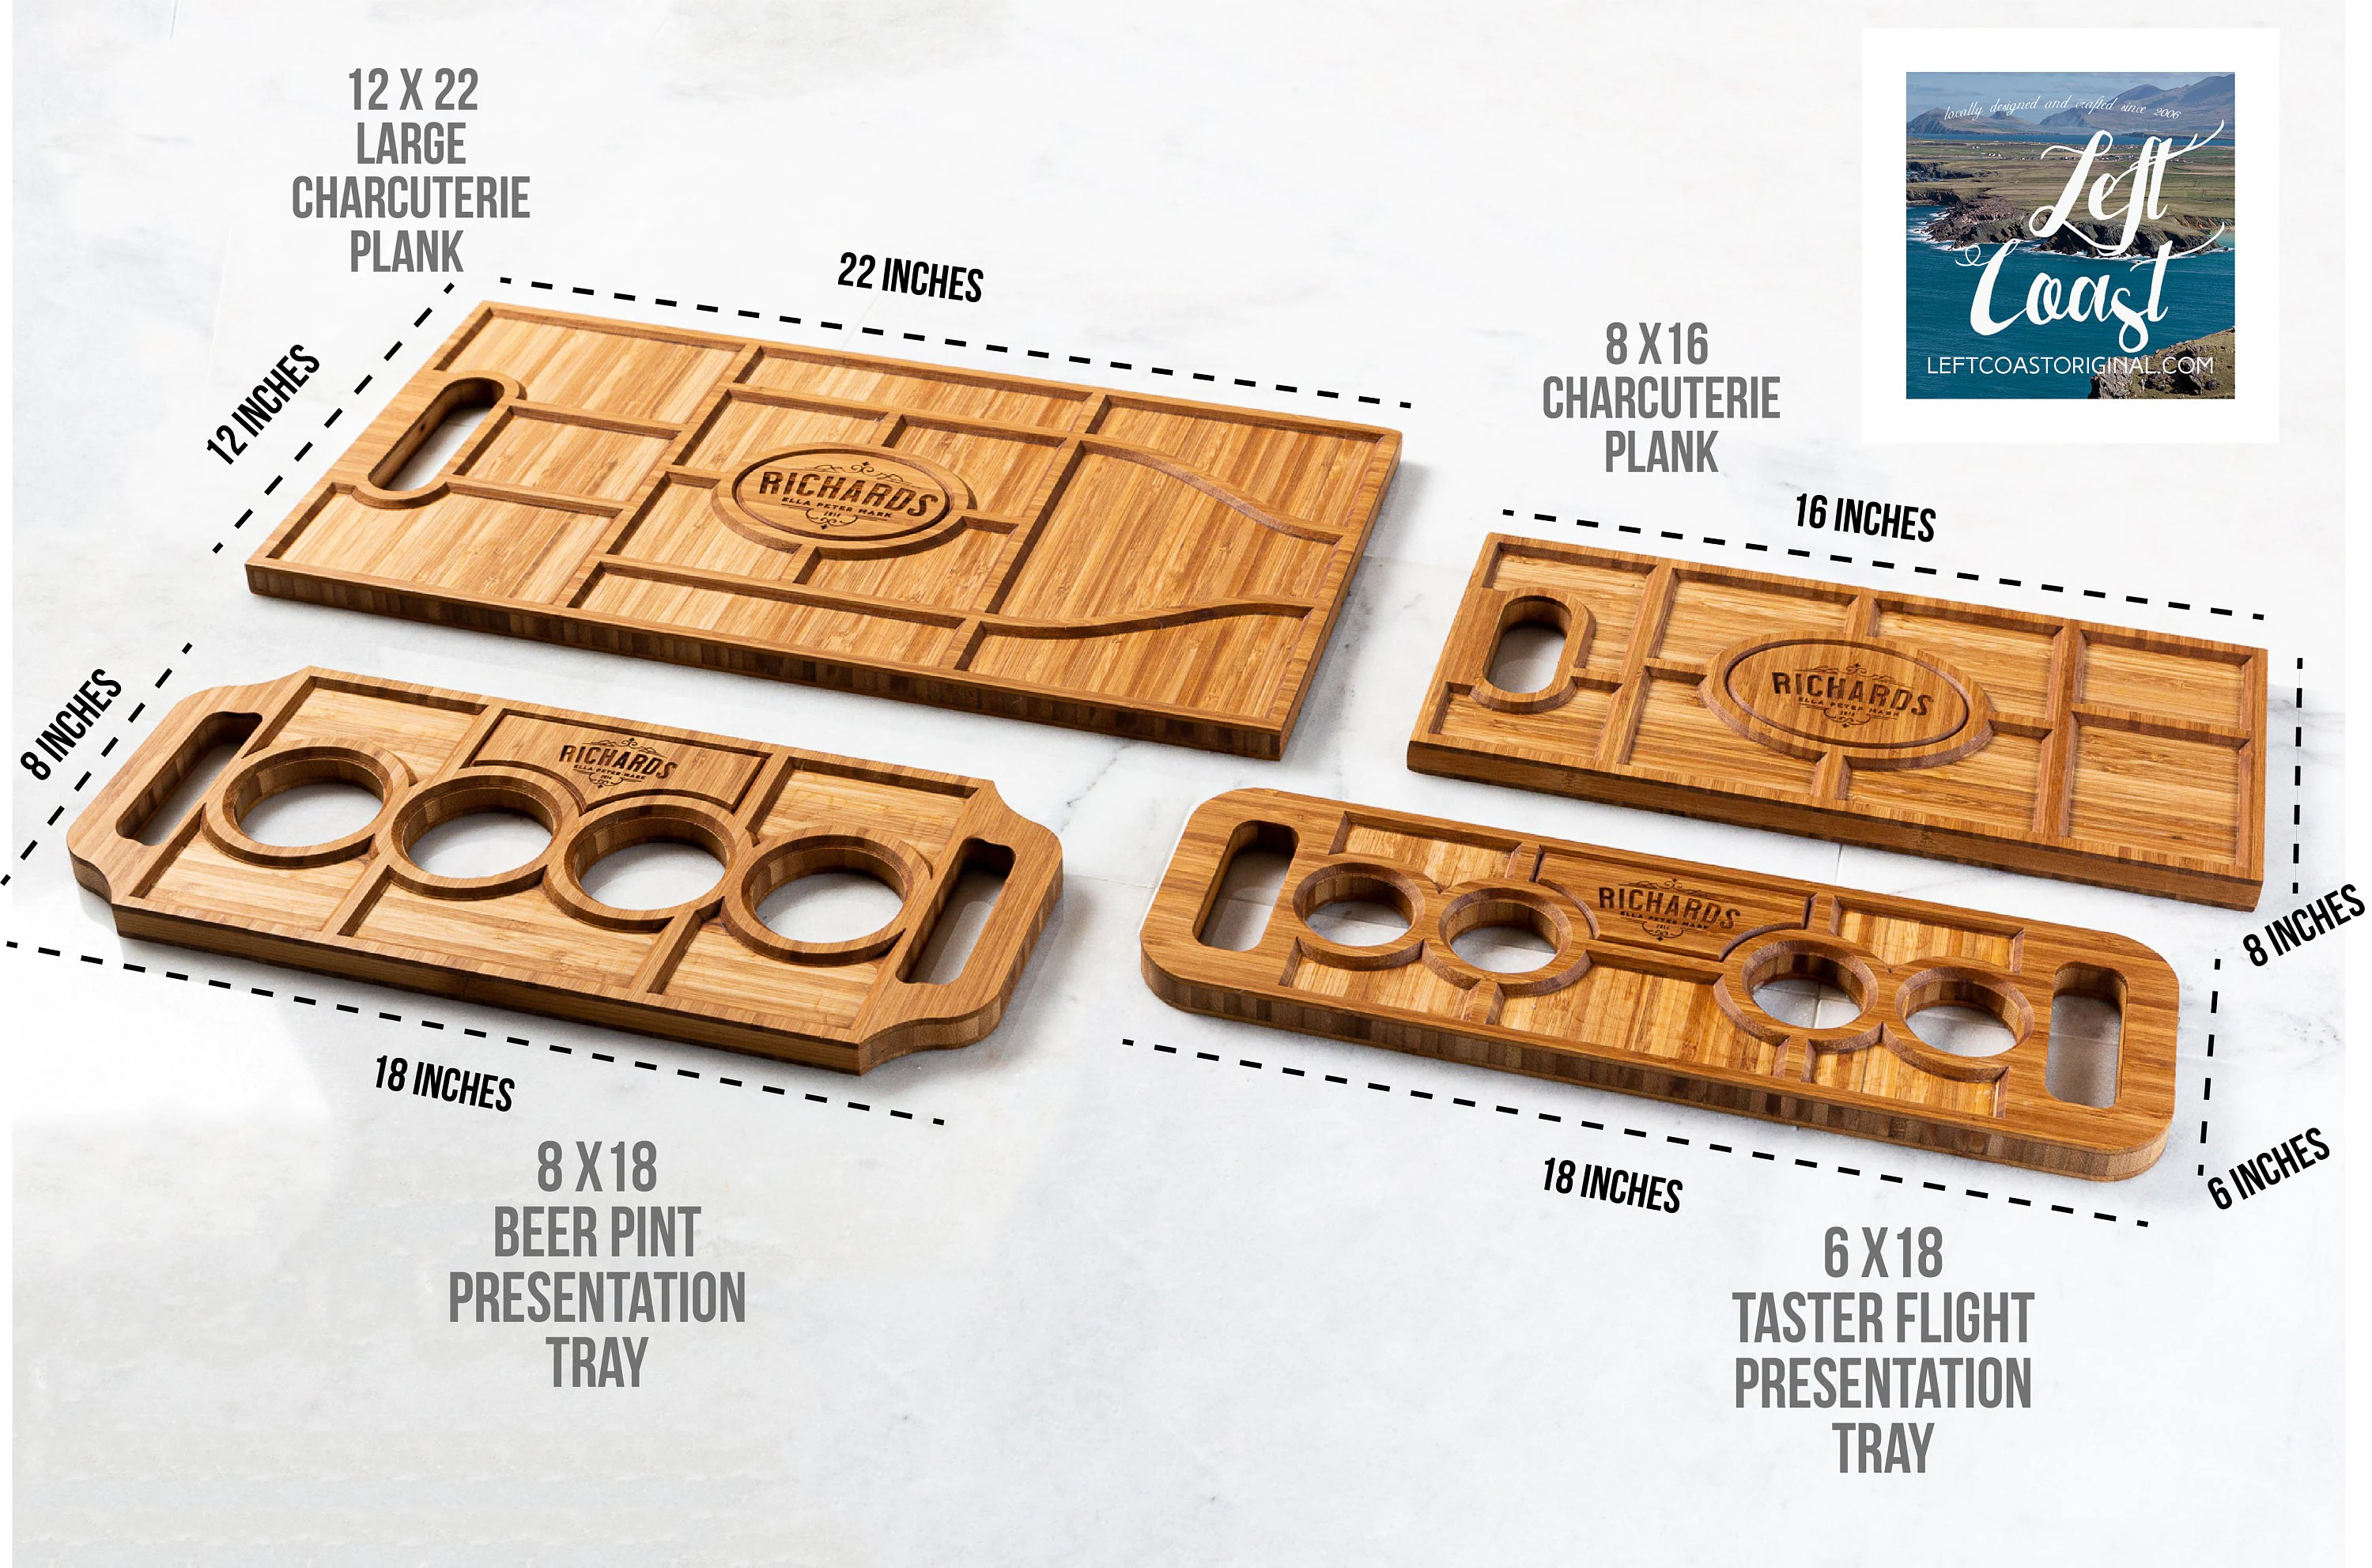 Personalized Charcuterie Planks and Beer Flights  4 Styles image 1